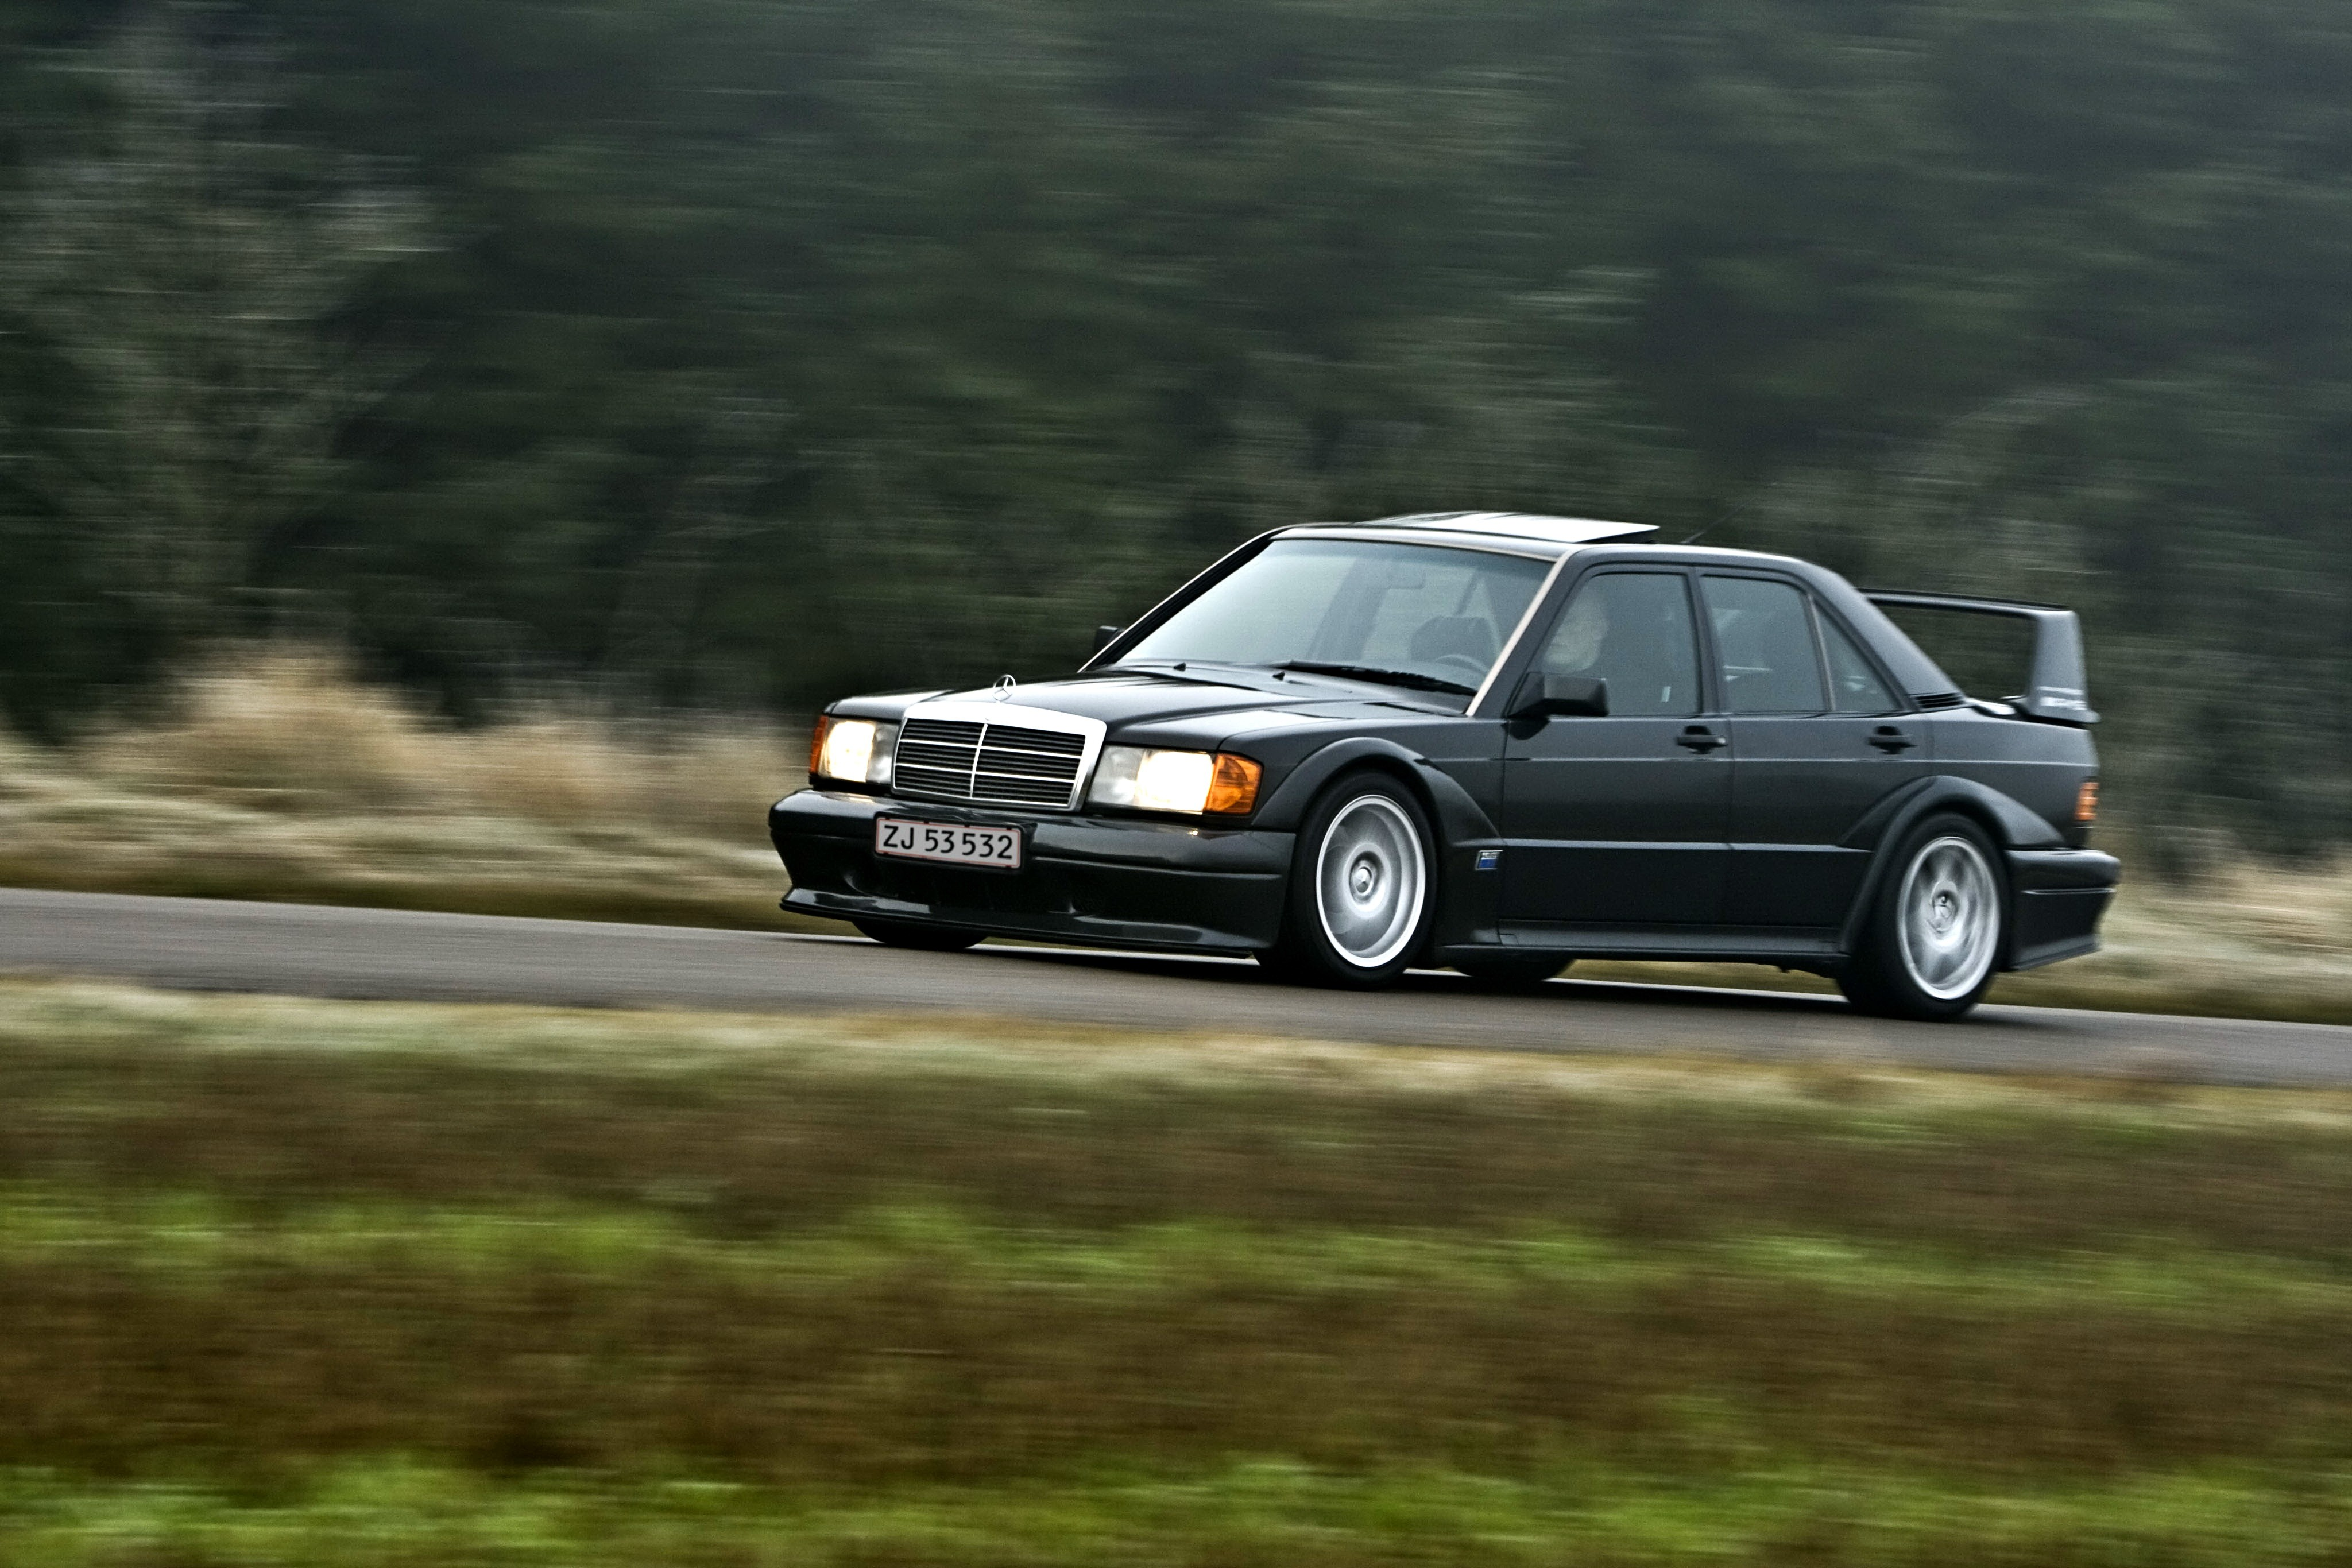 mercedes benz 190 e 2.5-16 evolution ii specs - 1990, 1991